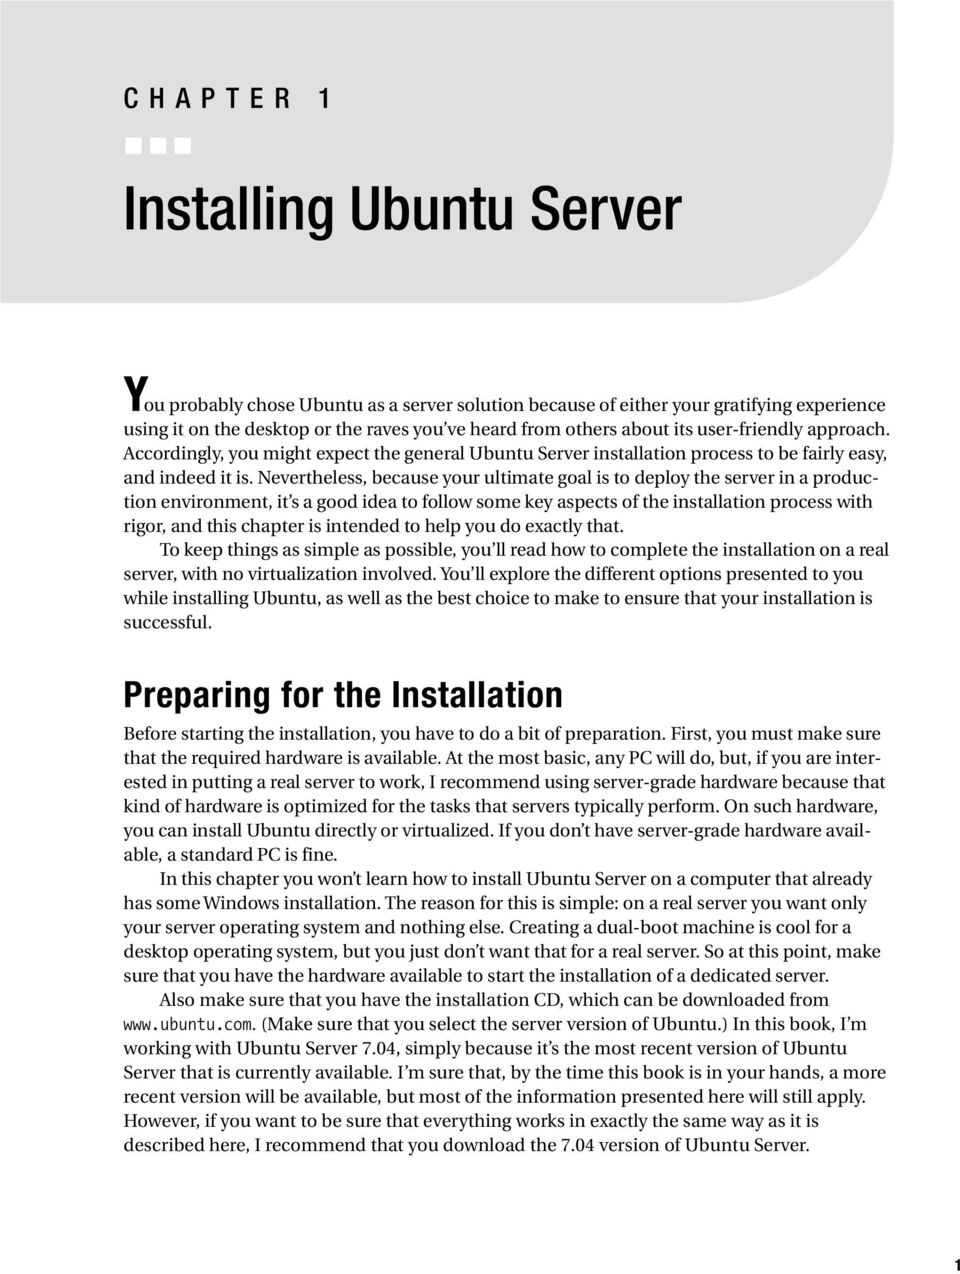 Nevertheless, because your ultimate goal is to deploy the server in a production environment, it s a good idea to follow some key aspects of the installation process with rigor, and this chapter is